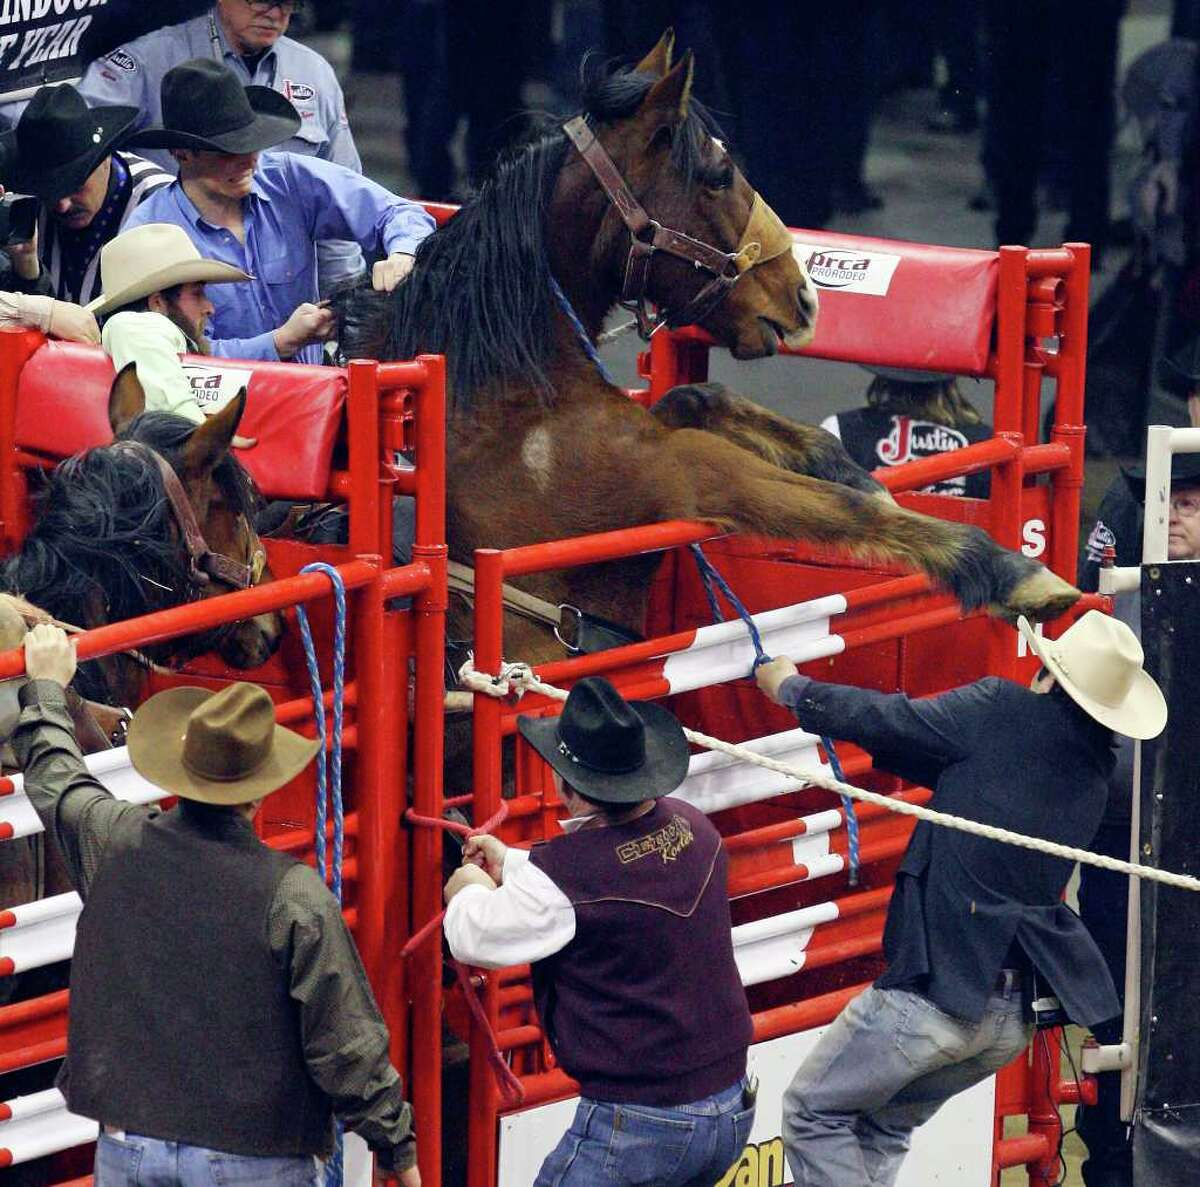 FOR METRO - A horse rears up in the chute before Jace Garrett's, from Alliance, NE , ride in the Saddle Bronc Riding event Saturday Feb. 5, 2011 during the San Antonio Stock Show & Rodeo at the AT&T Center. Garrett scored a 75 on the ride. (PHOTO BY EDWARD A. ORNELAS/eaornelas@express-news.net)